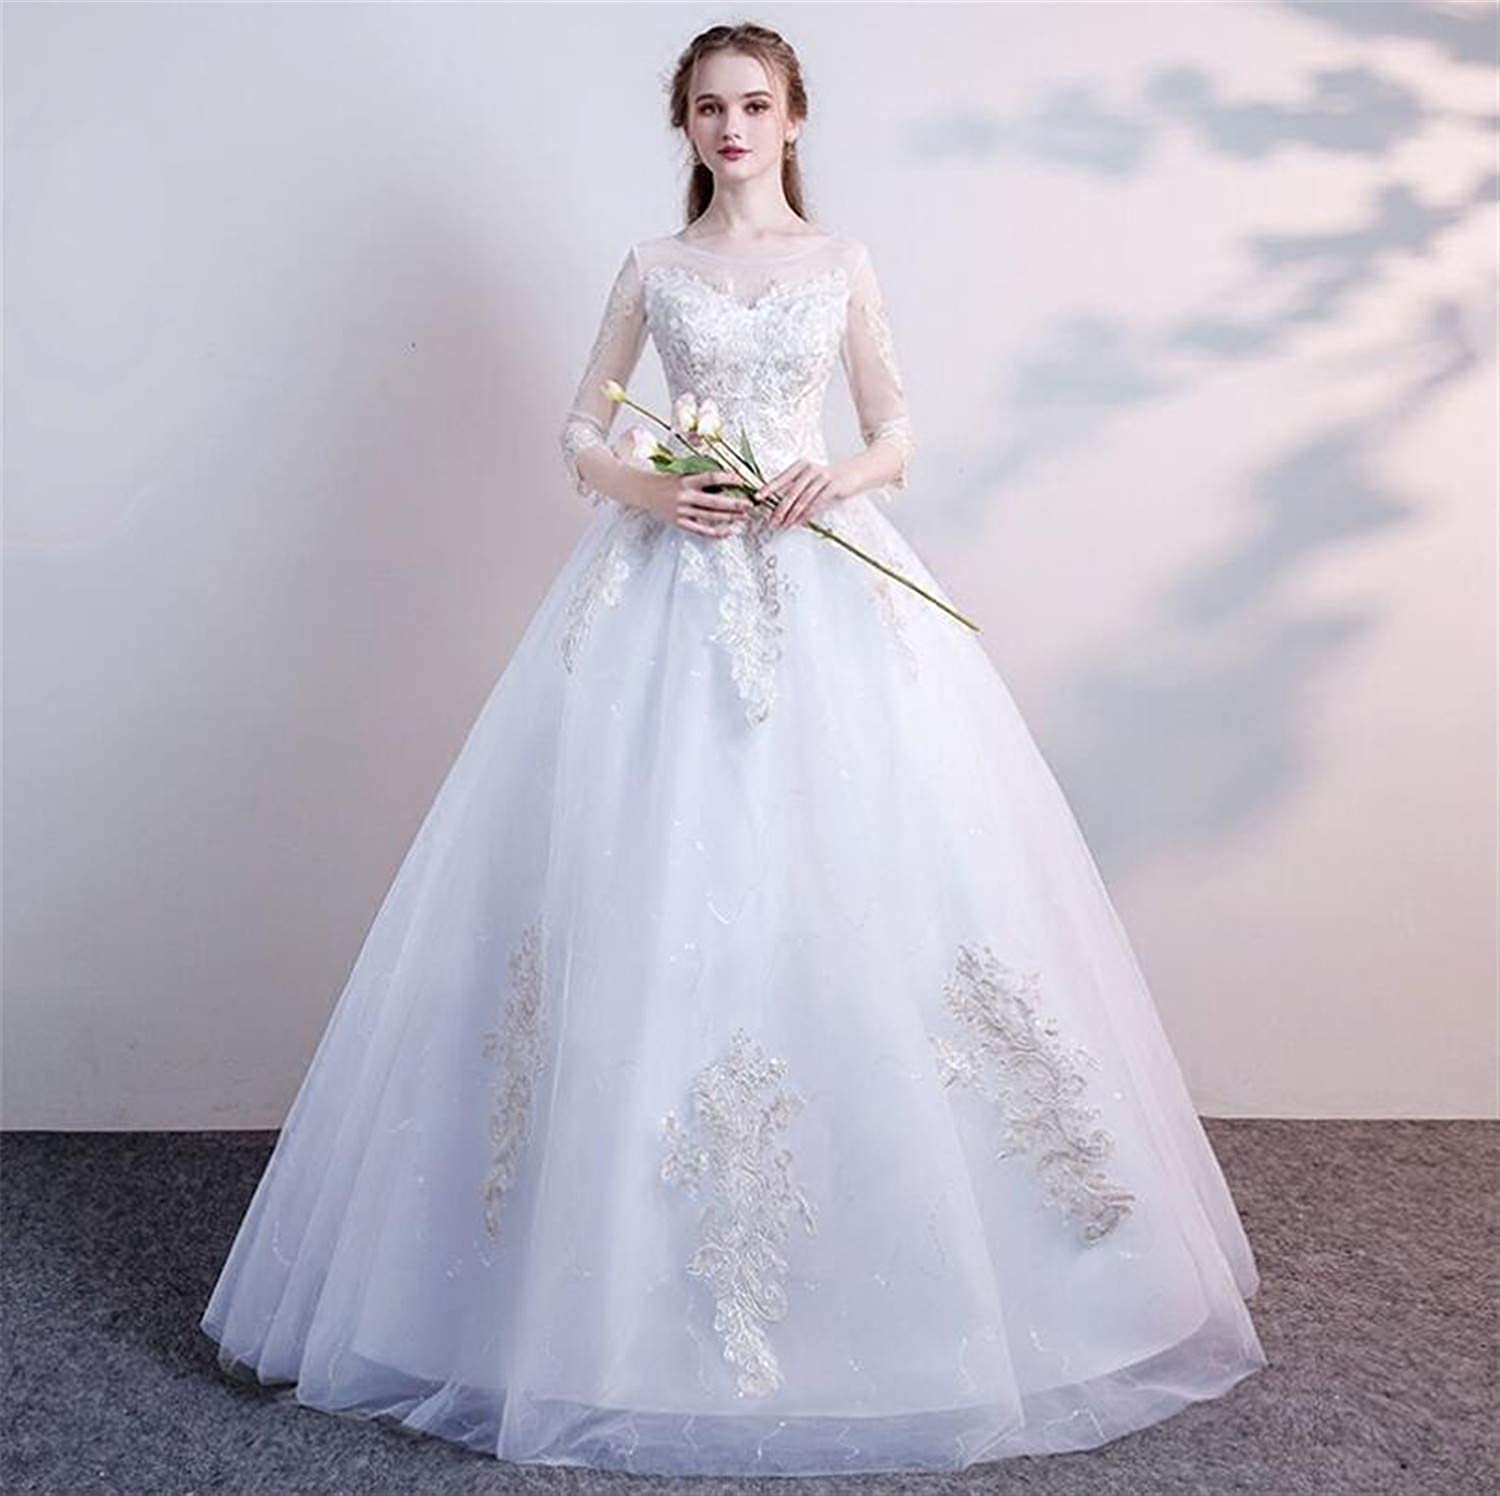 New Wedding Dress, One Shoulder Winter Bride Simple Princess Dream Long Sleeve Ground Light